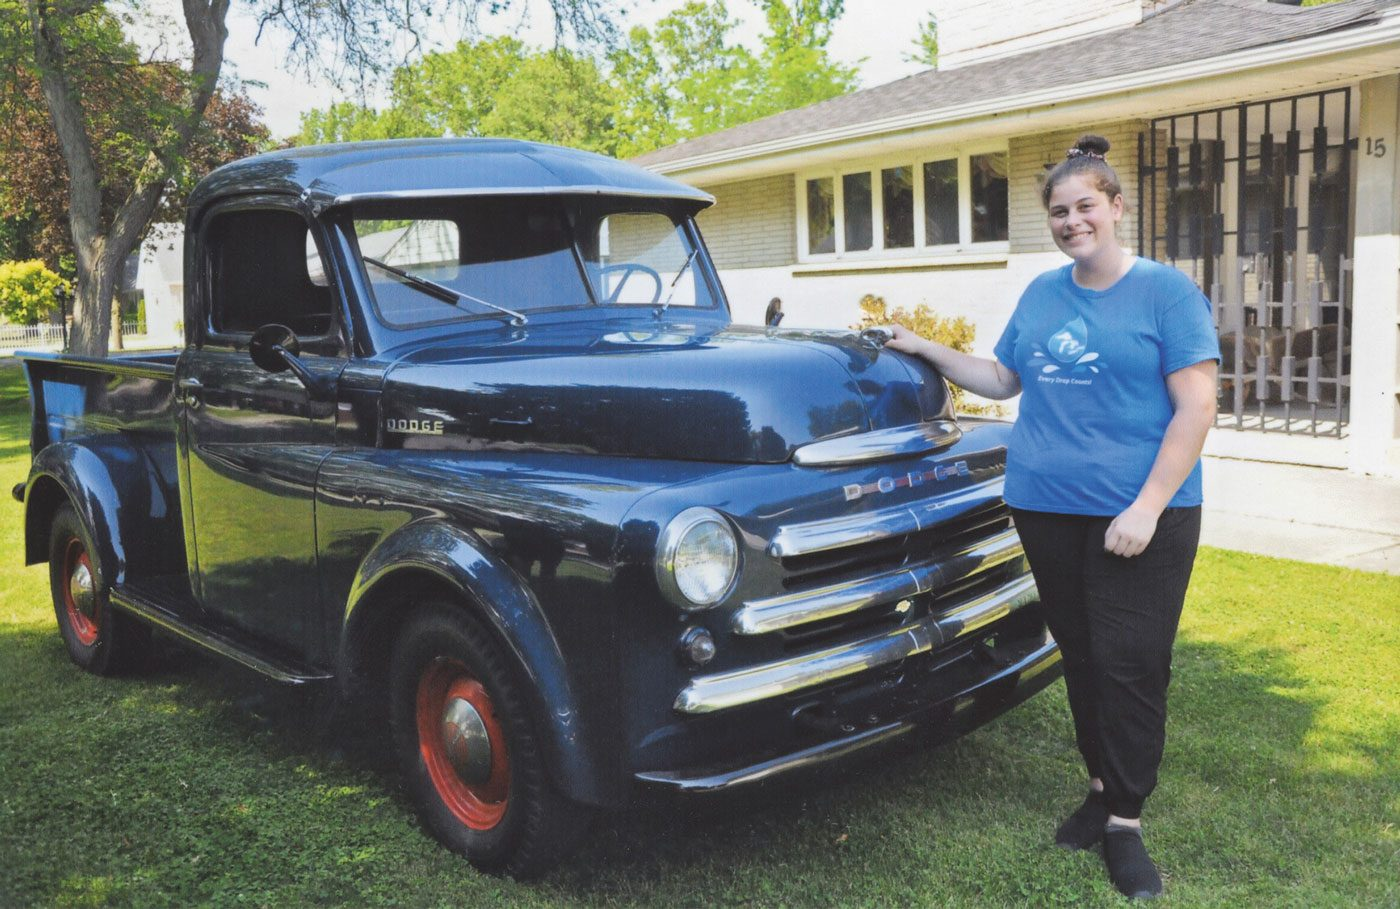 MIllie's granddaughter Jaclyn with the restored Dodge